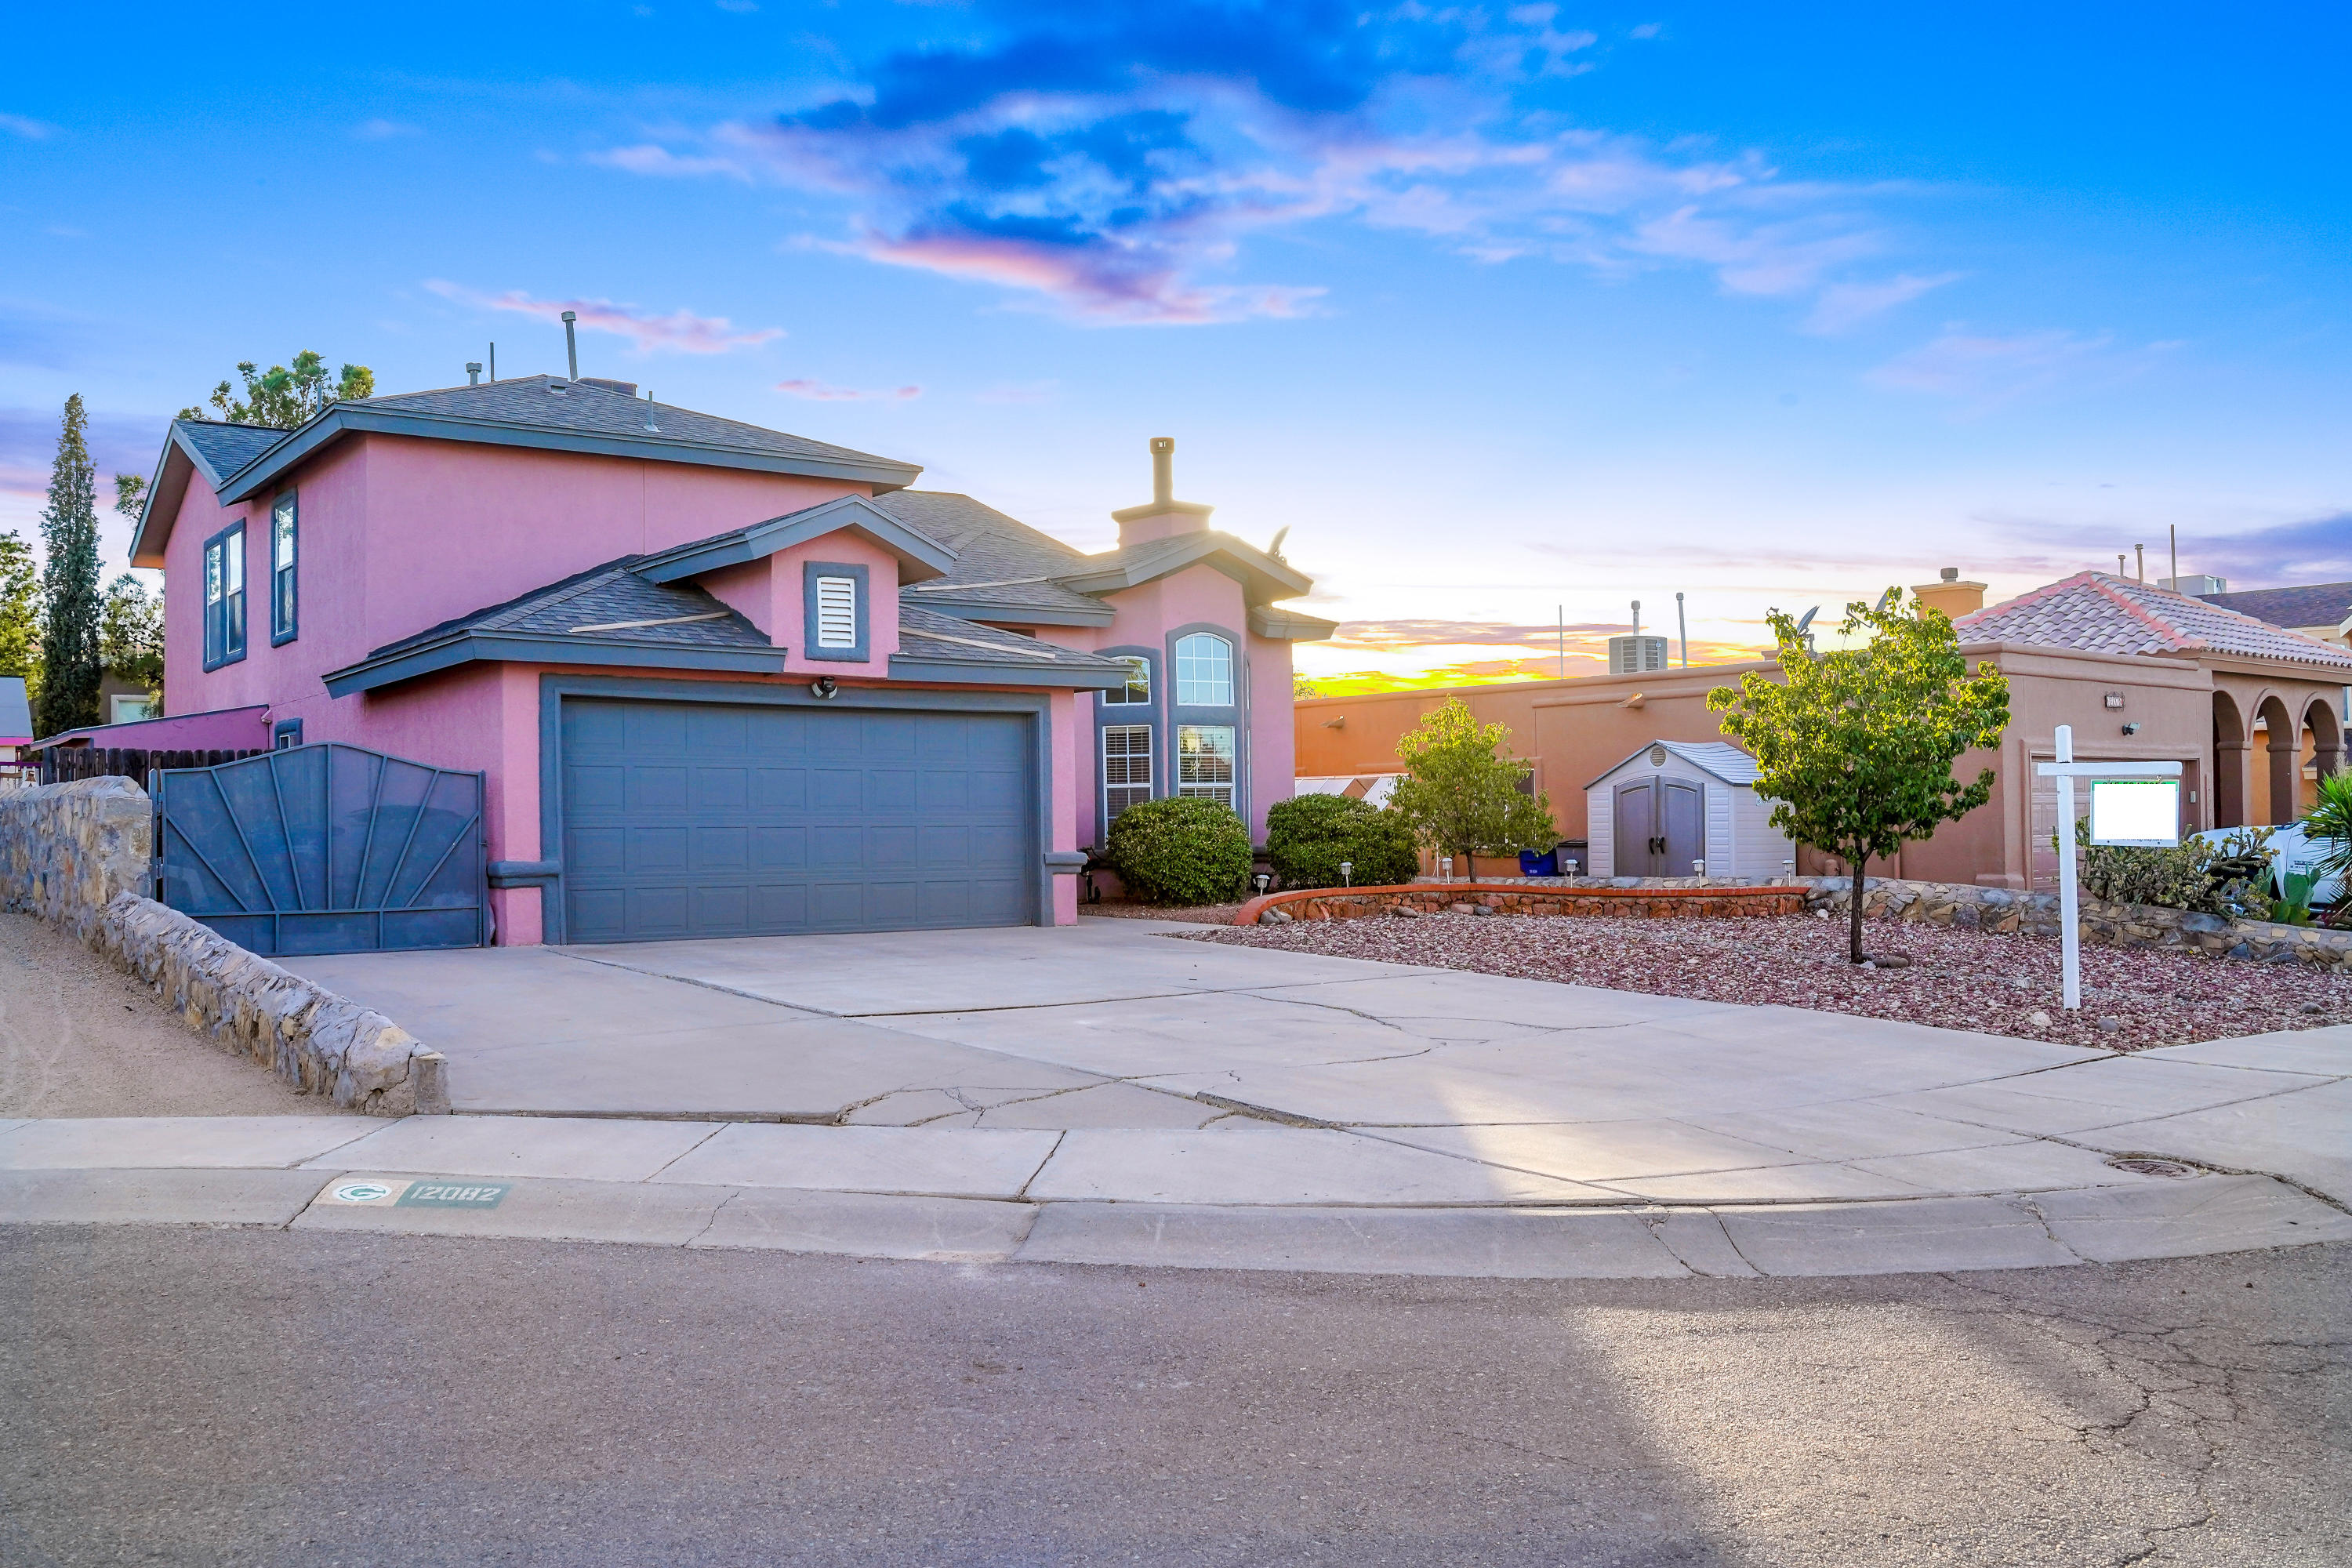 12082 STERLING MARY, El Paso, Texas 79936, 3 Bedrooms Bedrooms, ,3 BathroomsBathrooms,Residential,For sale,STERLING MARY,835764